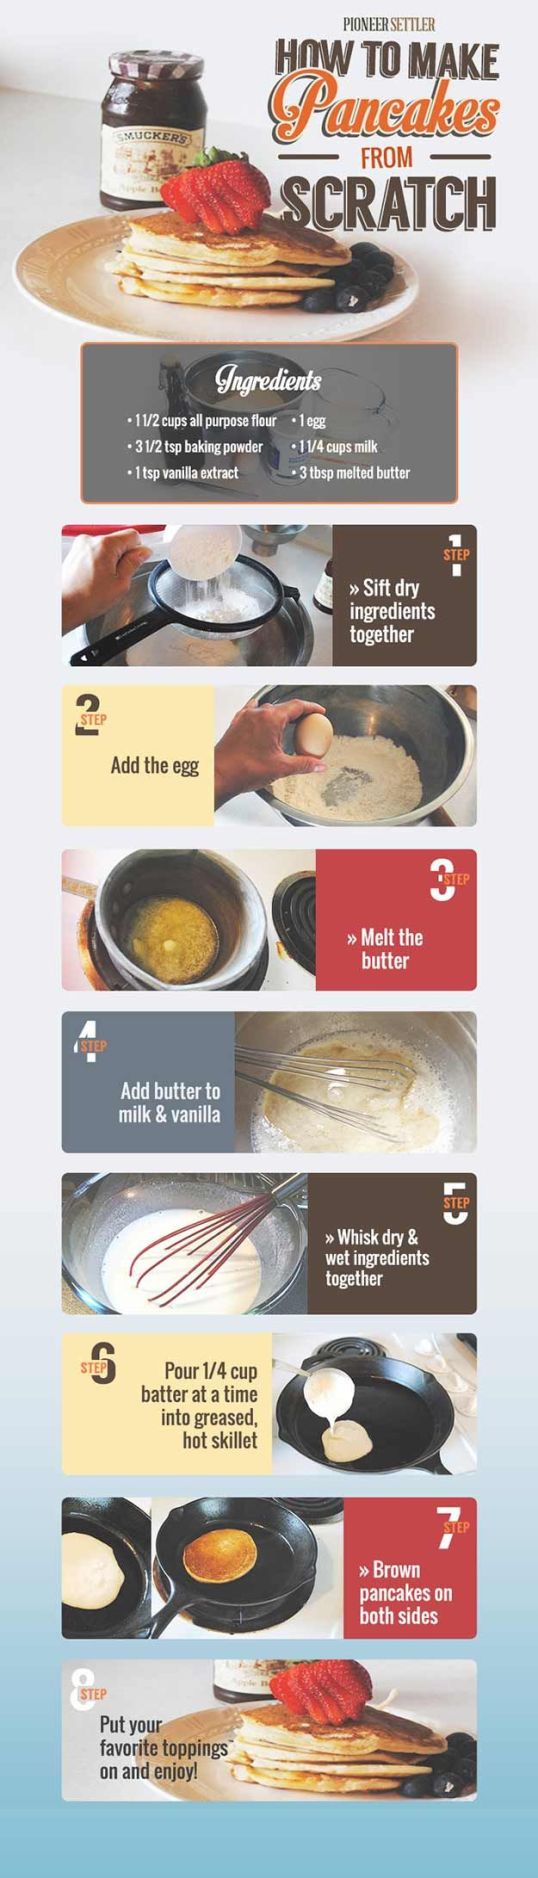 How to Make Pancakes from Scratch   Perfect Pancake Recipe - Pioneer Settler   Homesteading   Self Reliance   Recipes